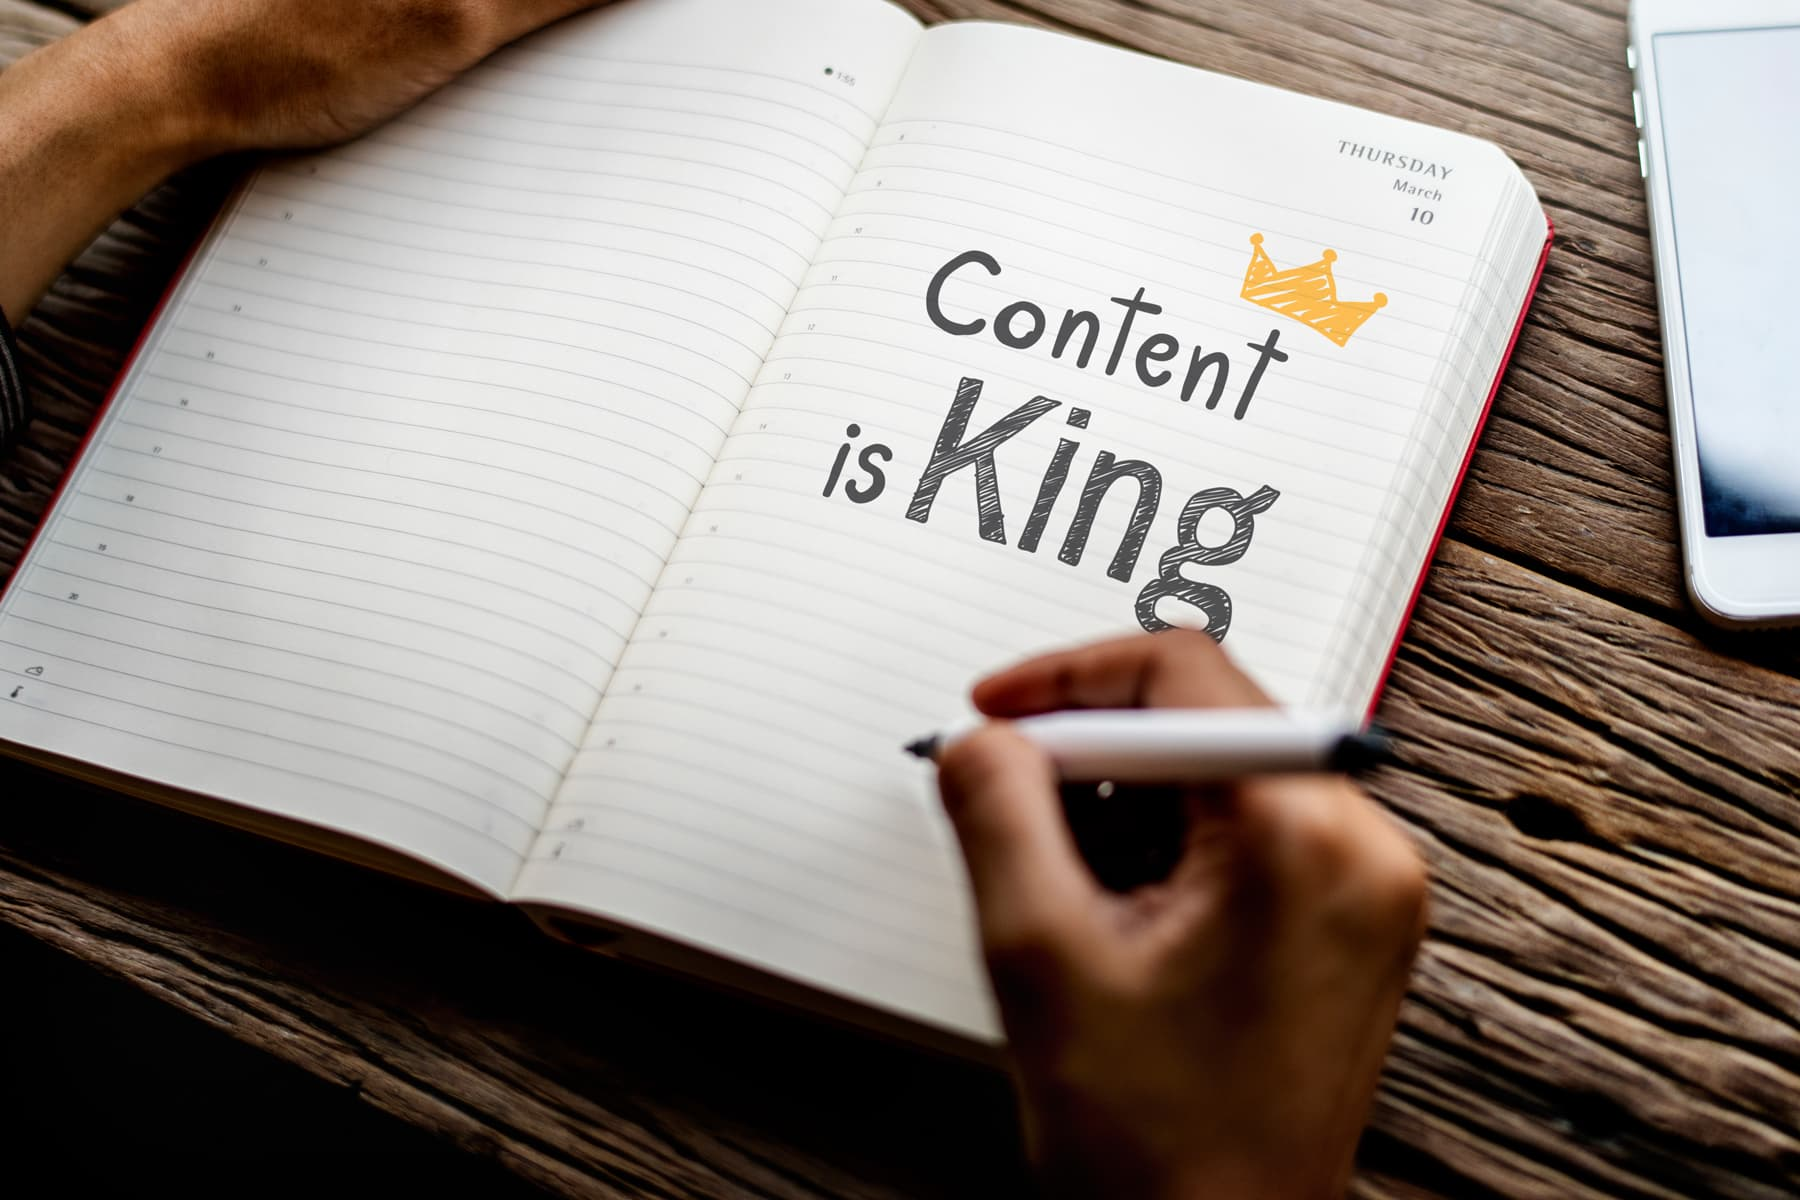 A close-up view of a person writing content is king in the opened notebook.